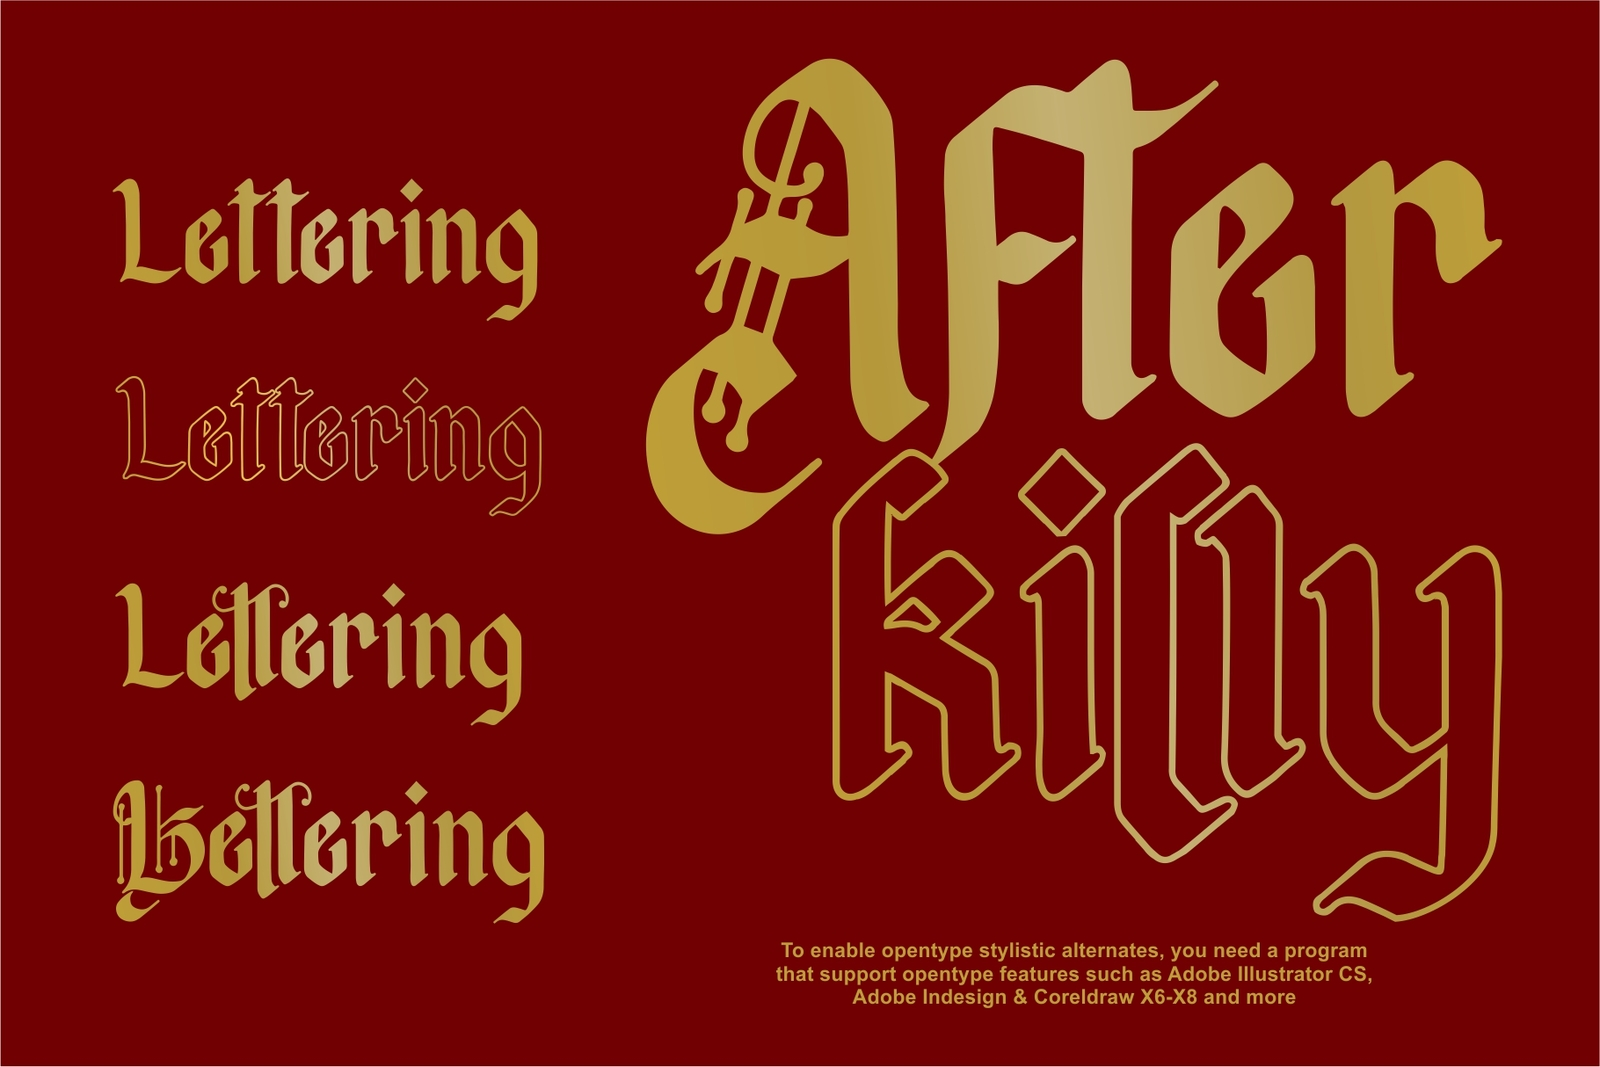 Afterkilly - New Blackletter